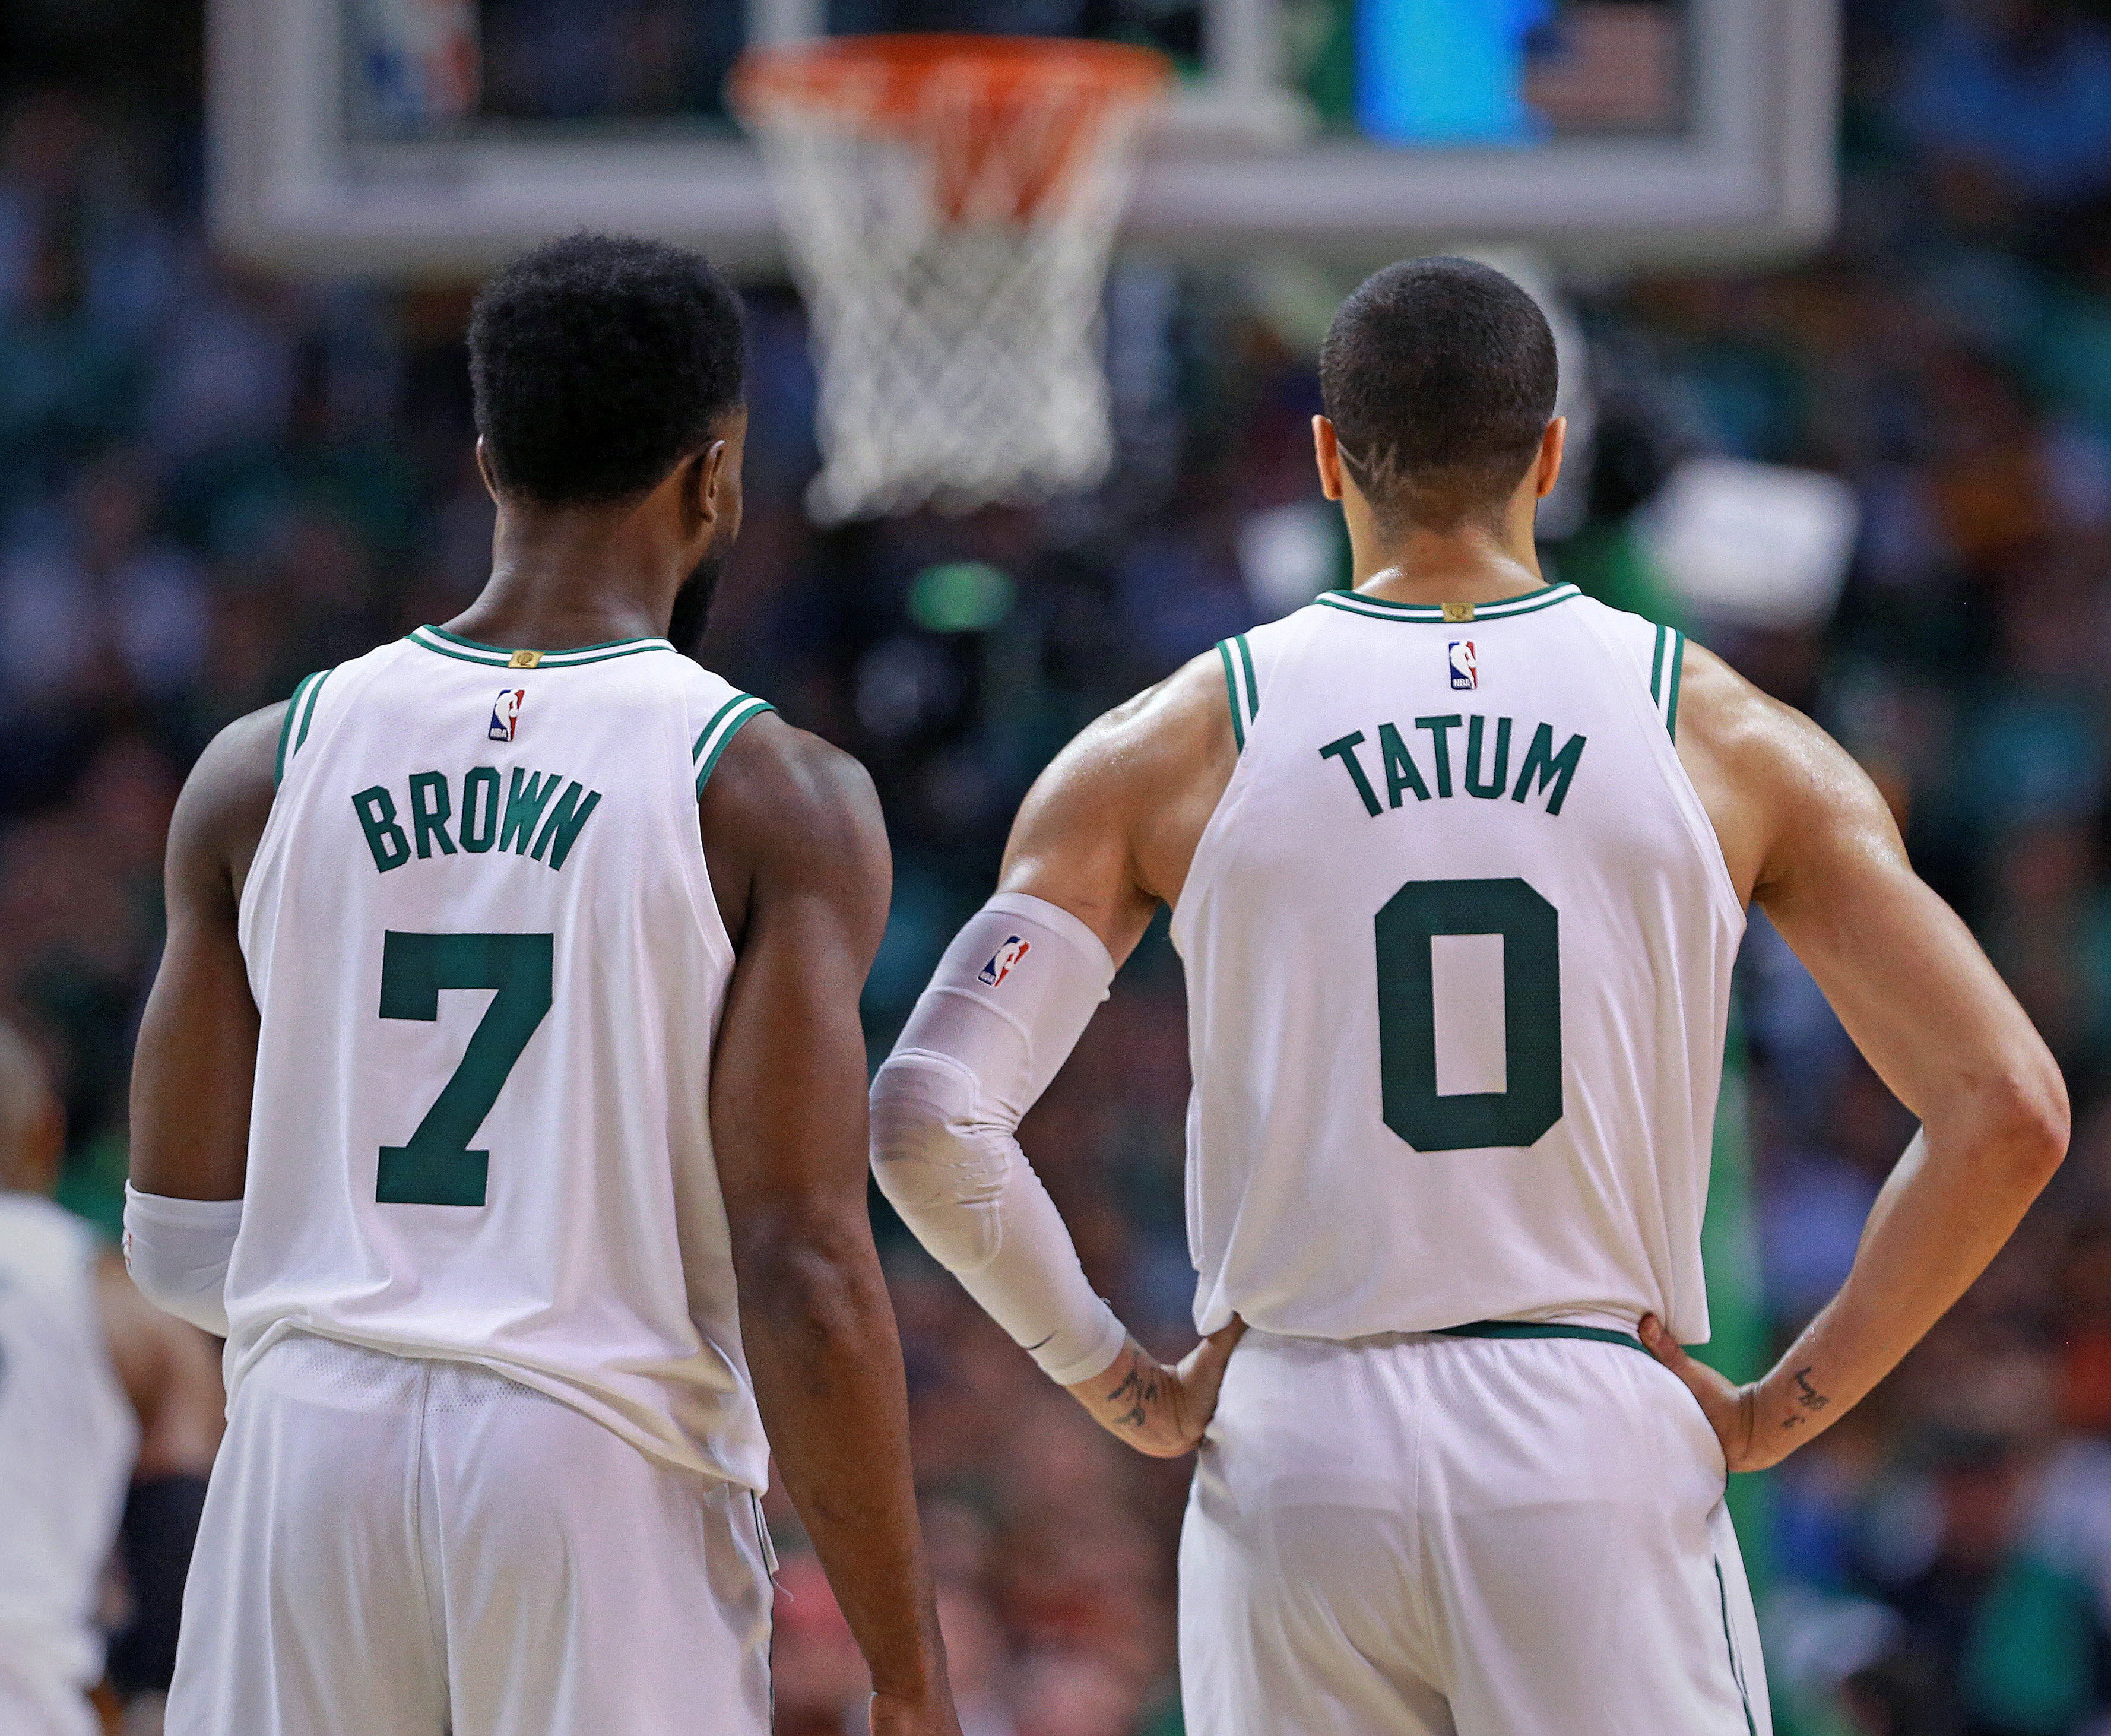 2c76d0e6fbe The great expectations of Jayson Tatum and Jaylen Brown - The Boston ...